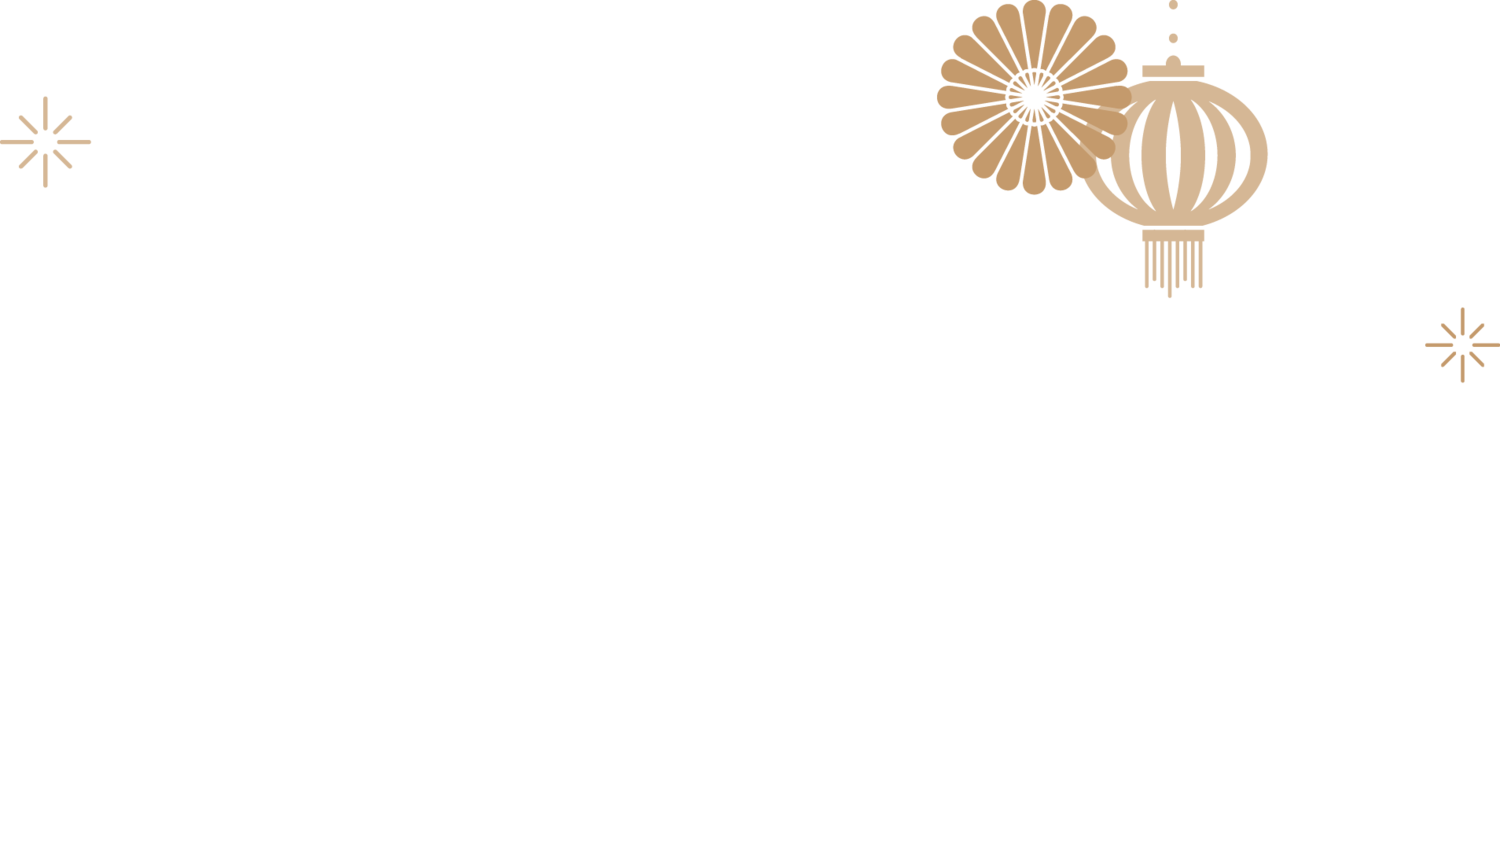 Lunar New Year Festival